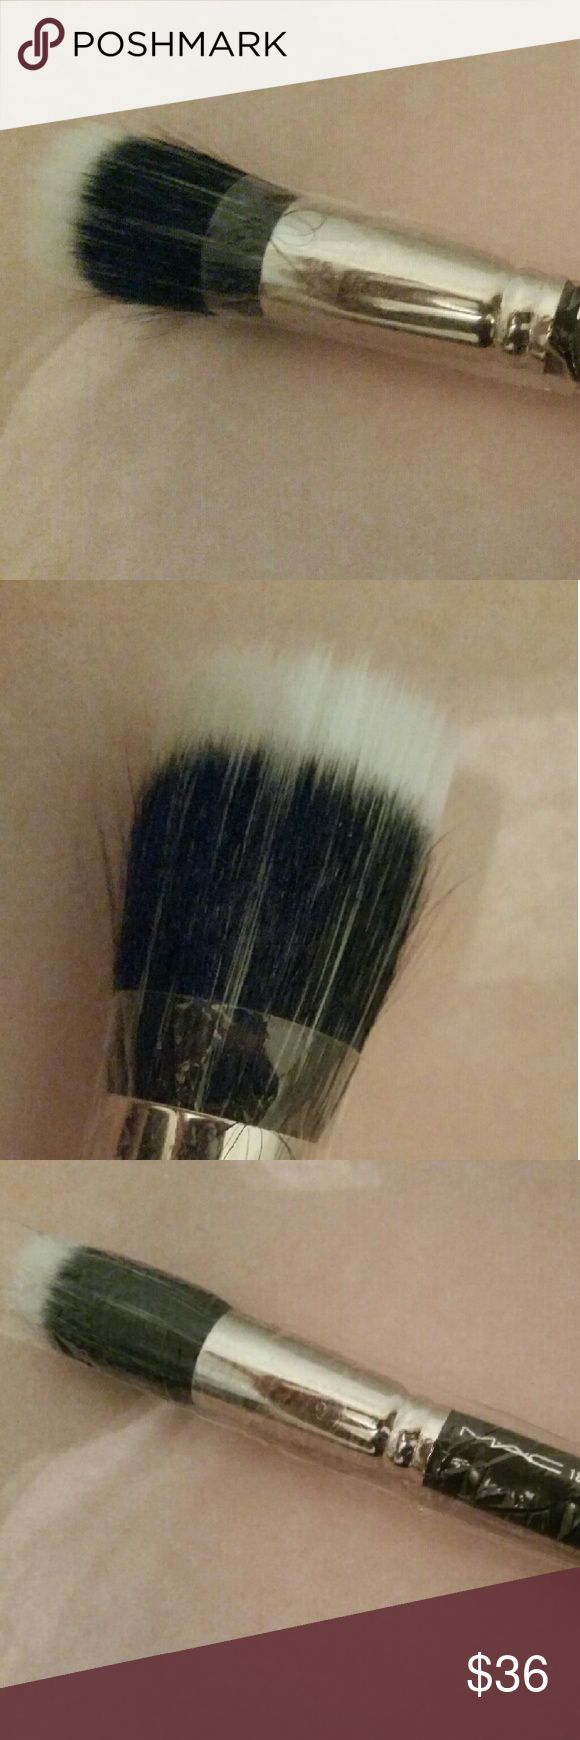 MAC duo fiber face brush #187 NEW New in plastic. This 187 duo fiber brush is meant for adding light washes of powder all over the face. MAC Cosmetics Makeup Brushes & Tools